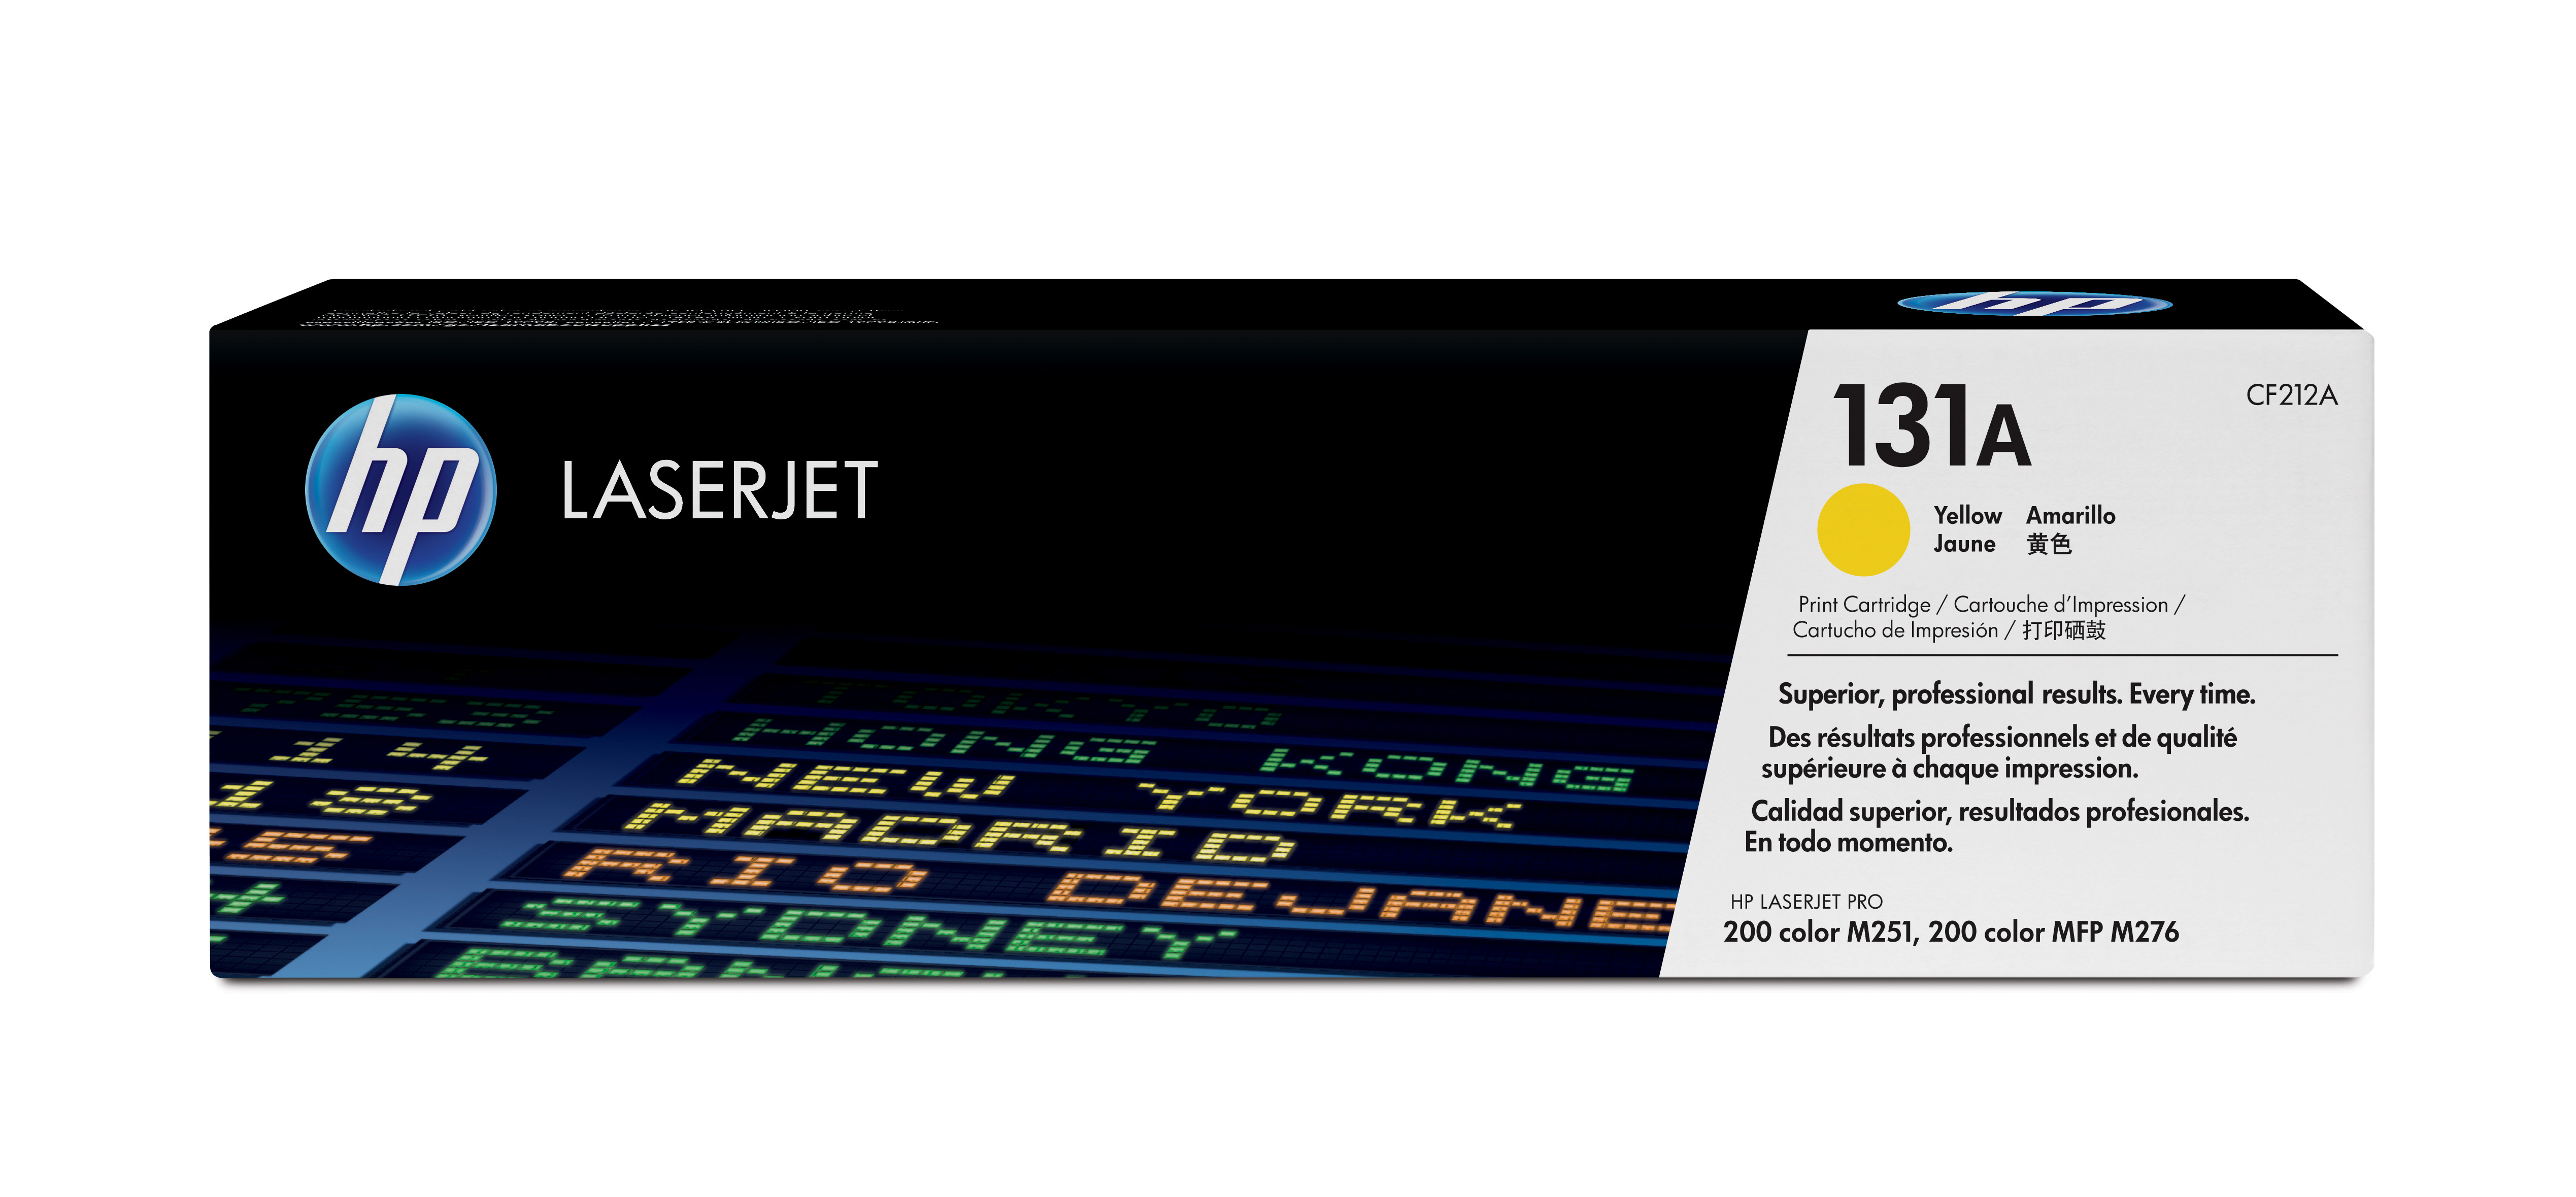 HP 131A Yellow Toner Cartridge CF212A